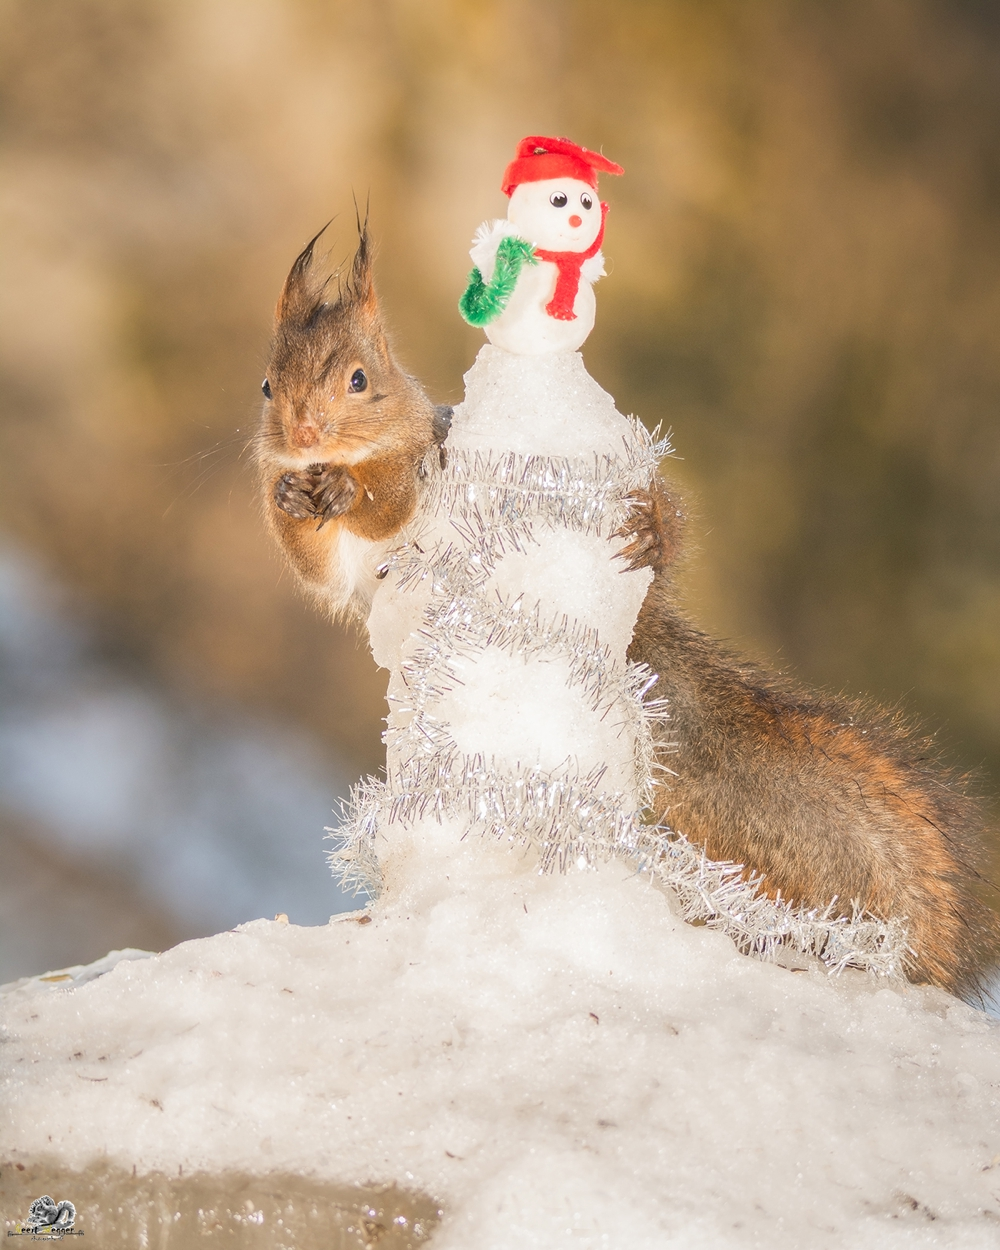 red squirrel embrace a snowman